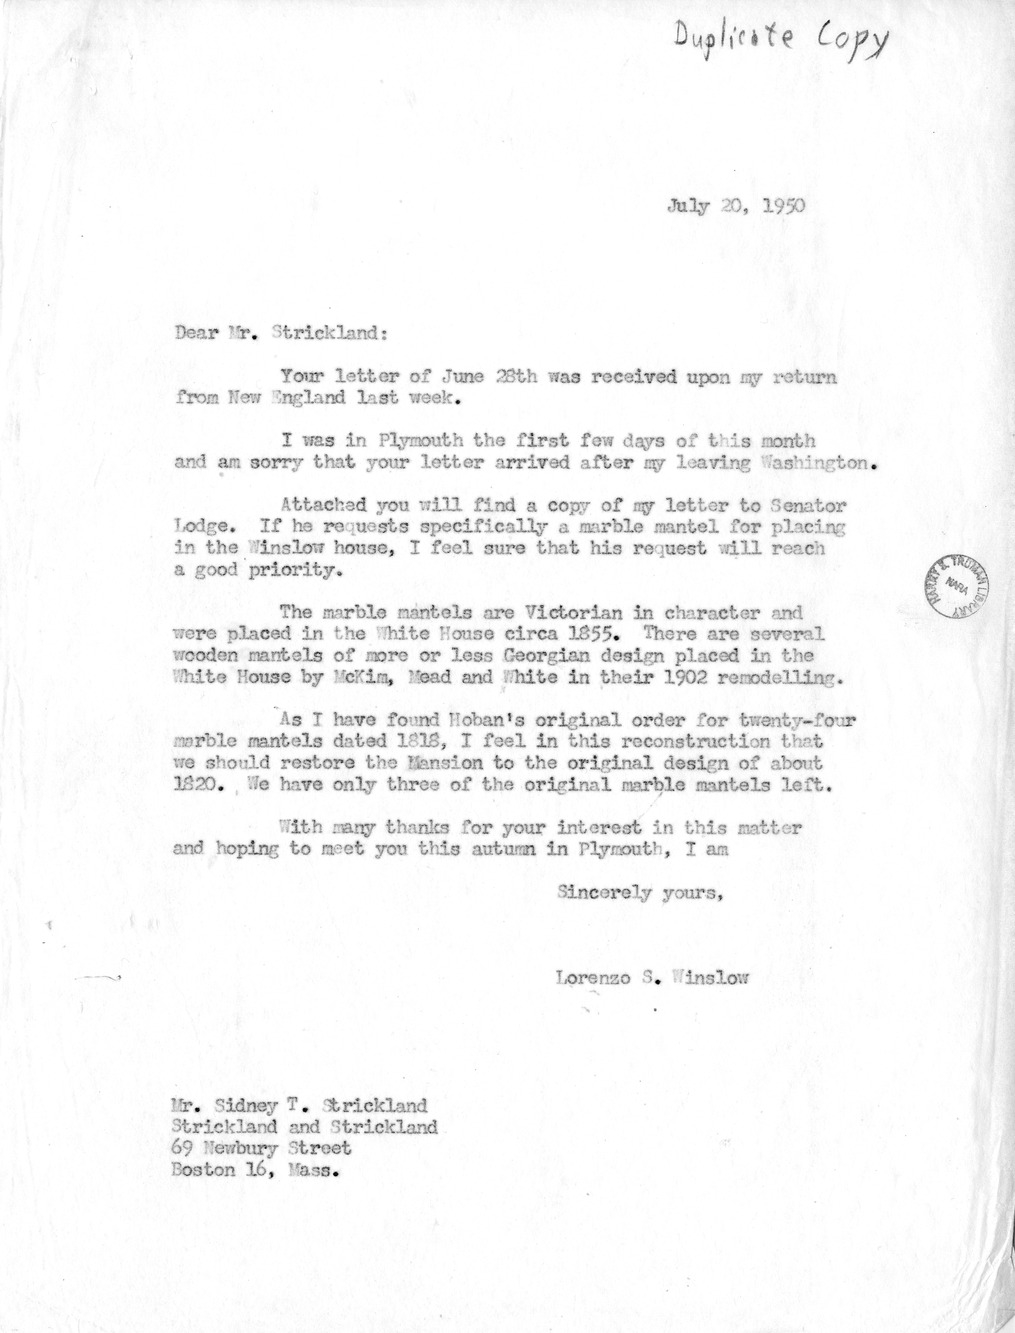 Letter from Lorenzo Winslow to Mr. Sidney T. Strickland